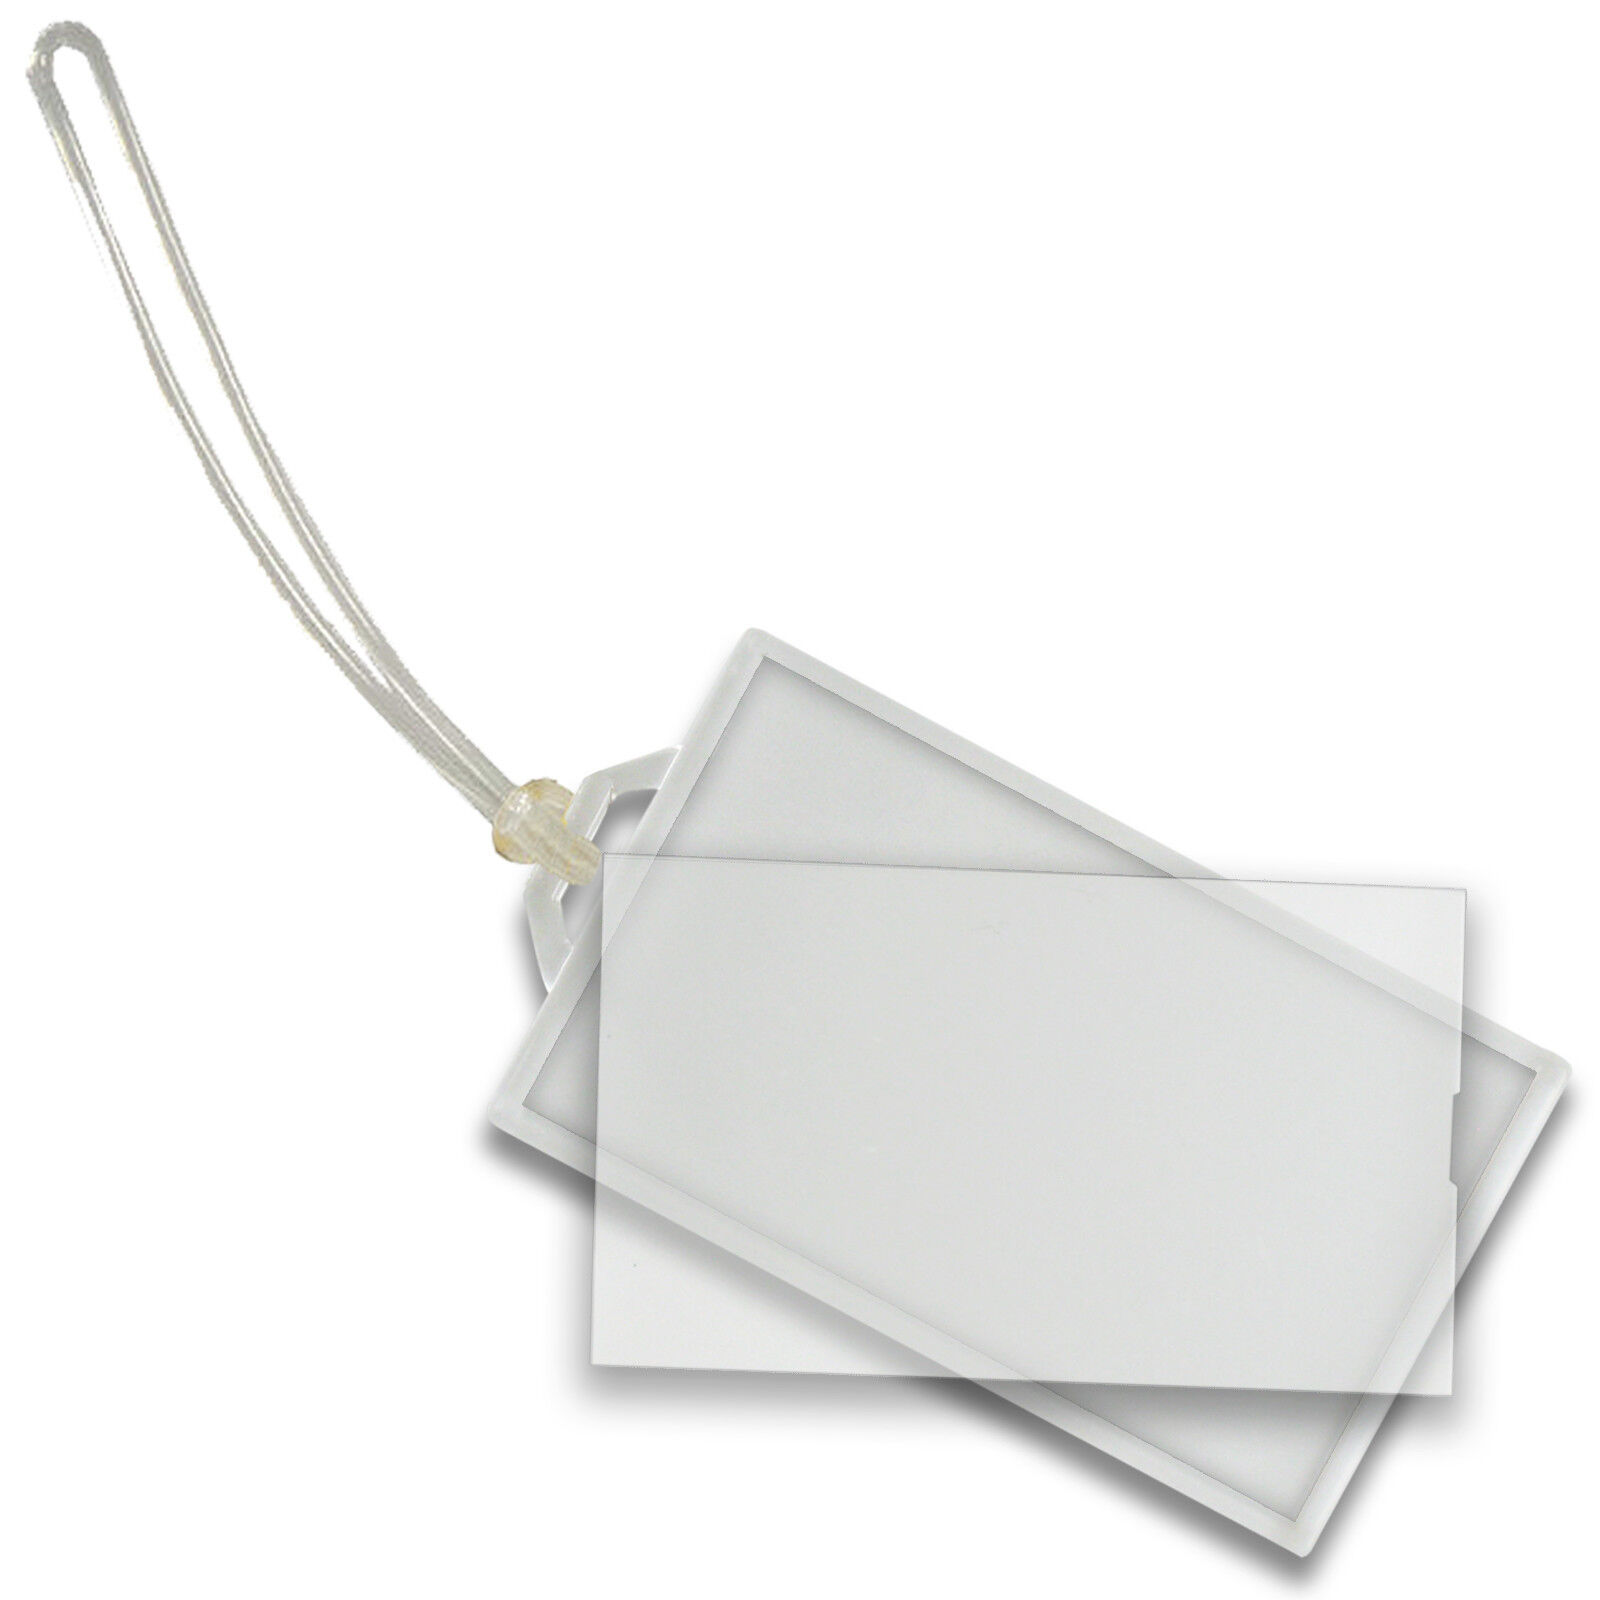 luggage tag snap in business card crystal clear acrylic lt70